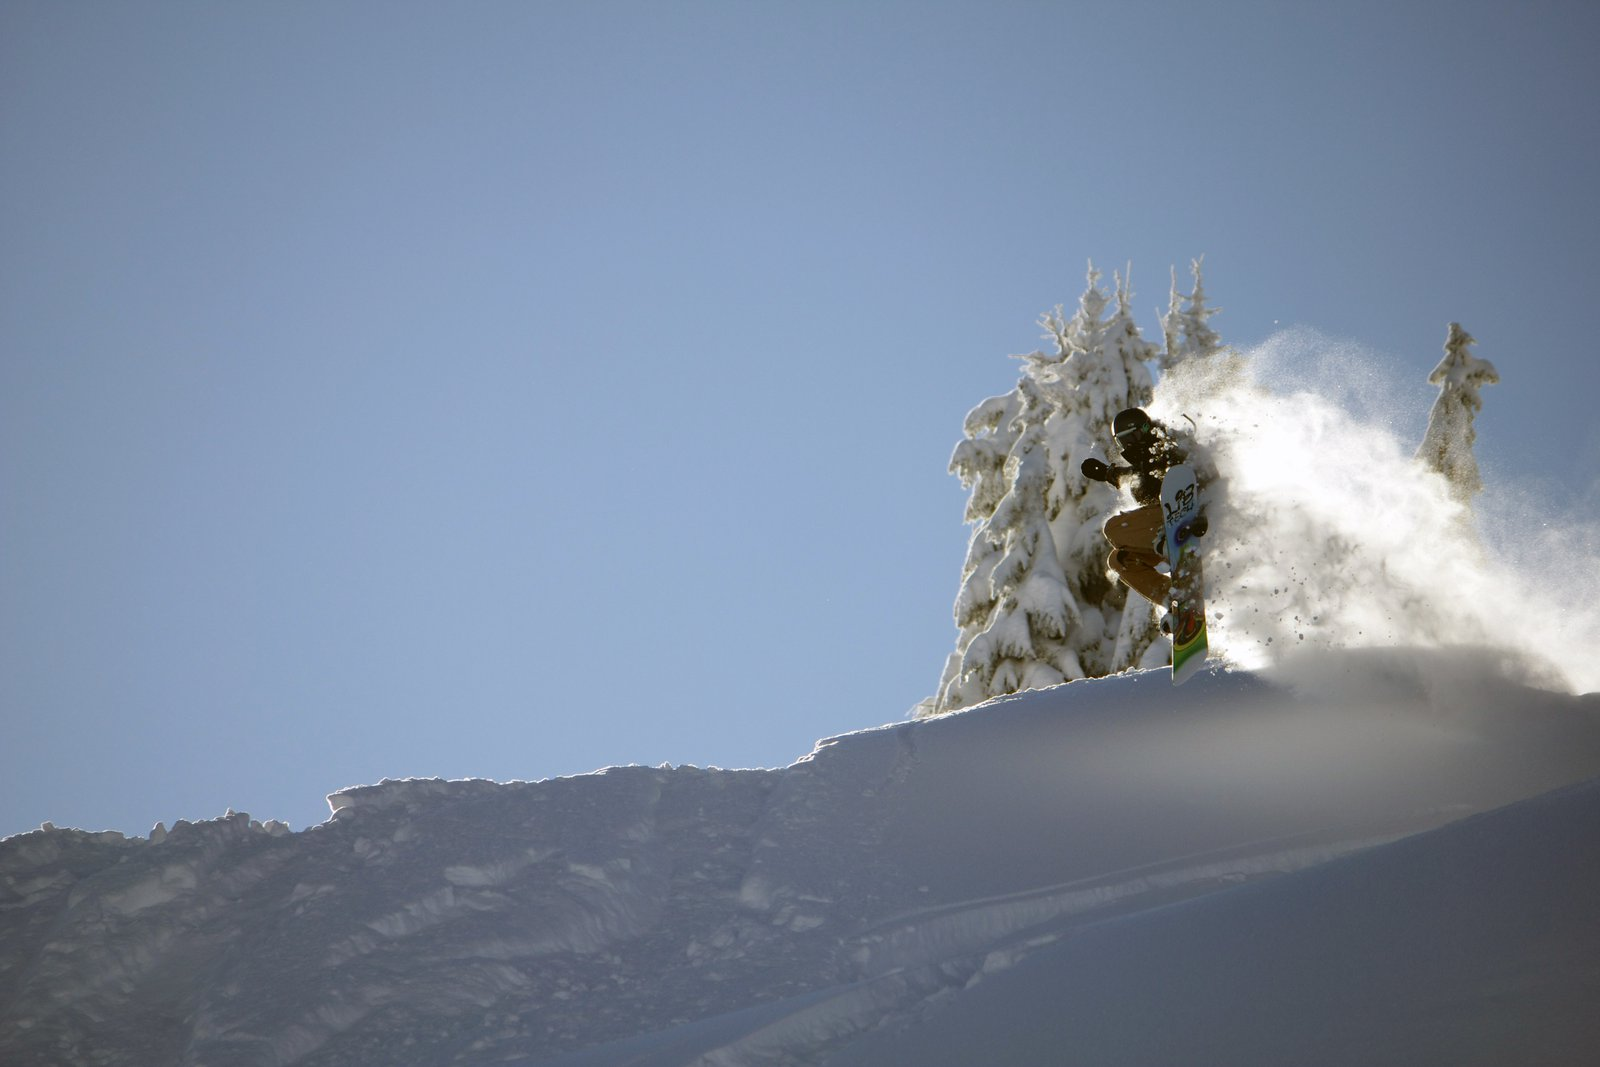 Pow in the bc